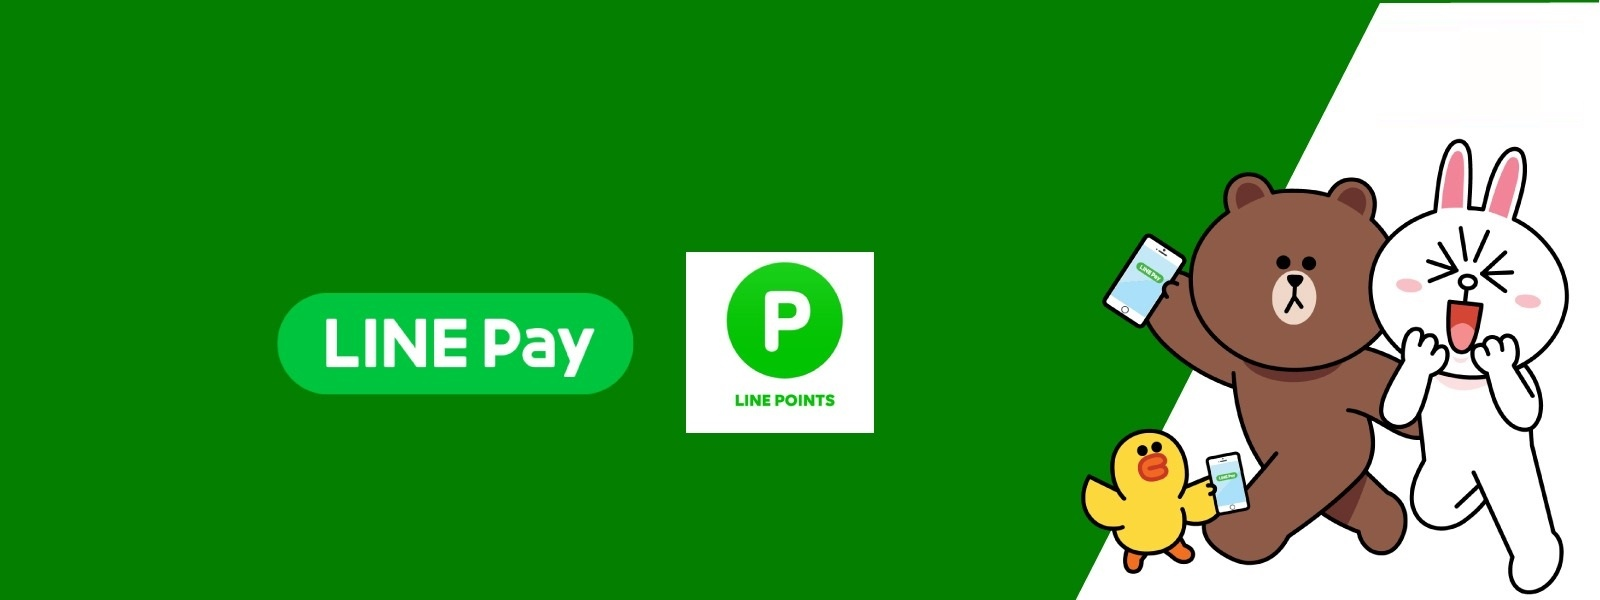 LINE-PAY - CreditCards